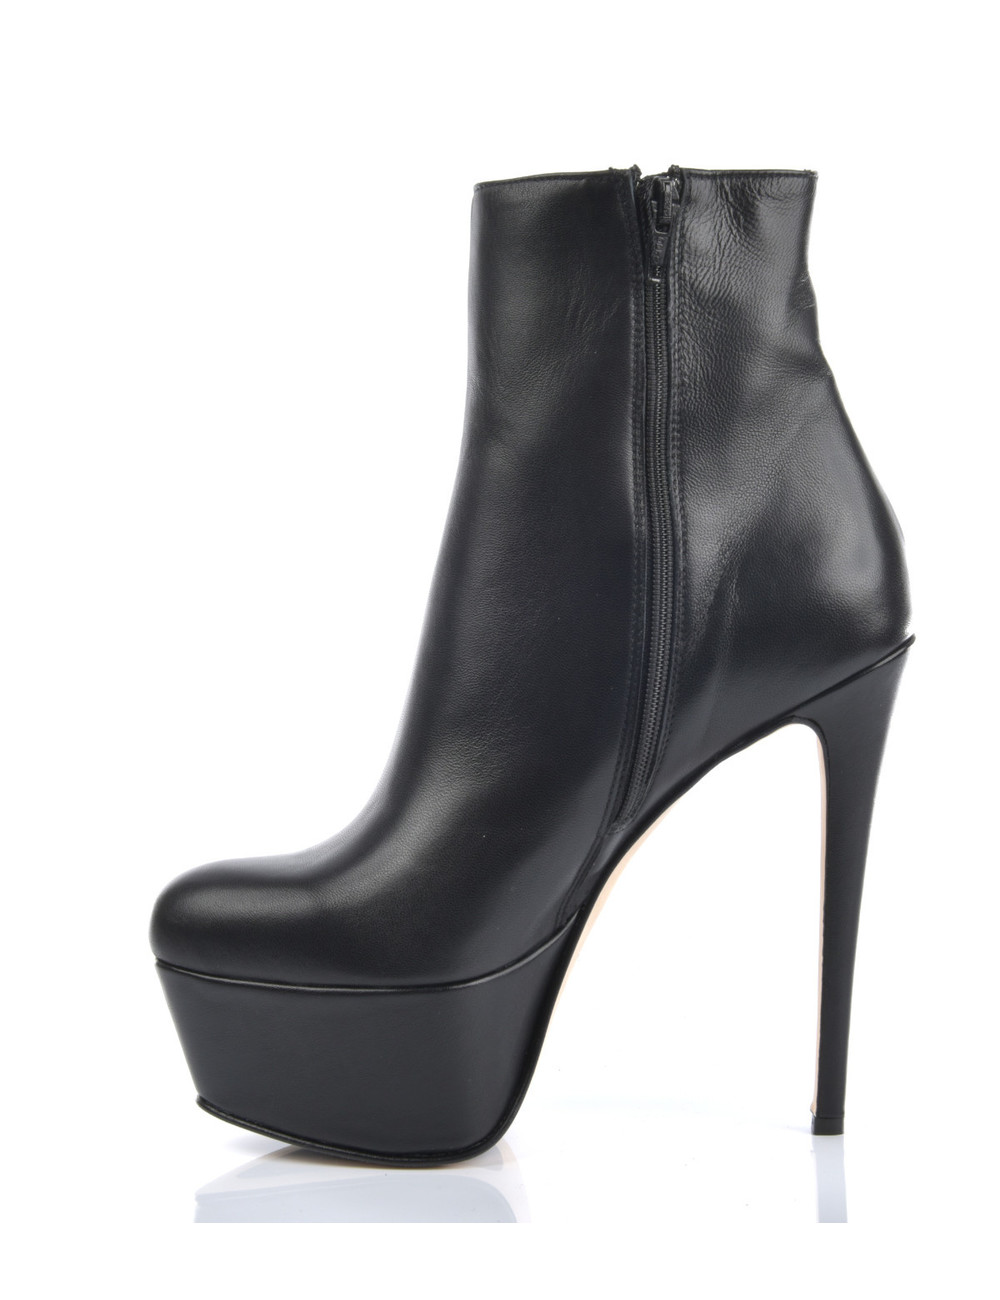 Sanctum  High Italian ankle boots with platform heels in real leather